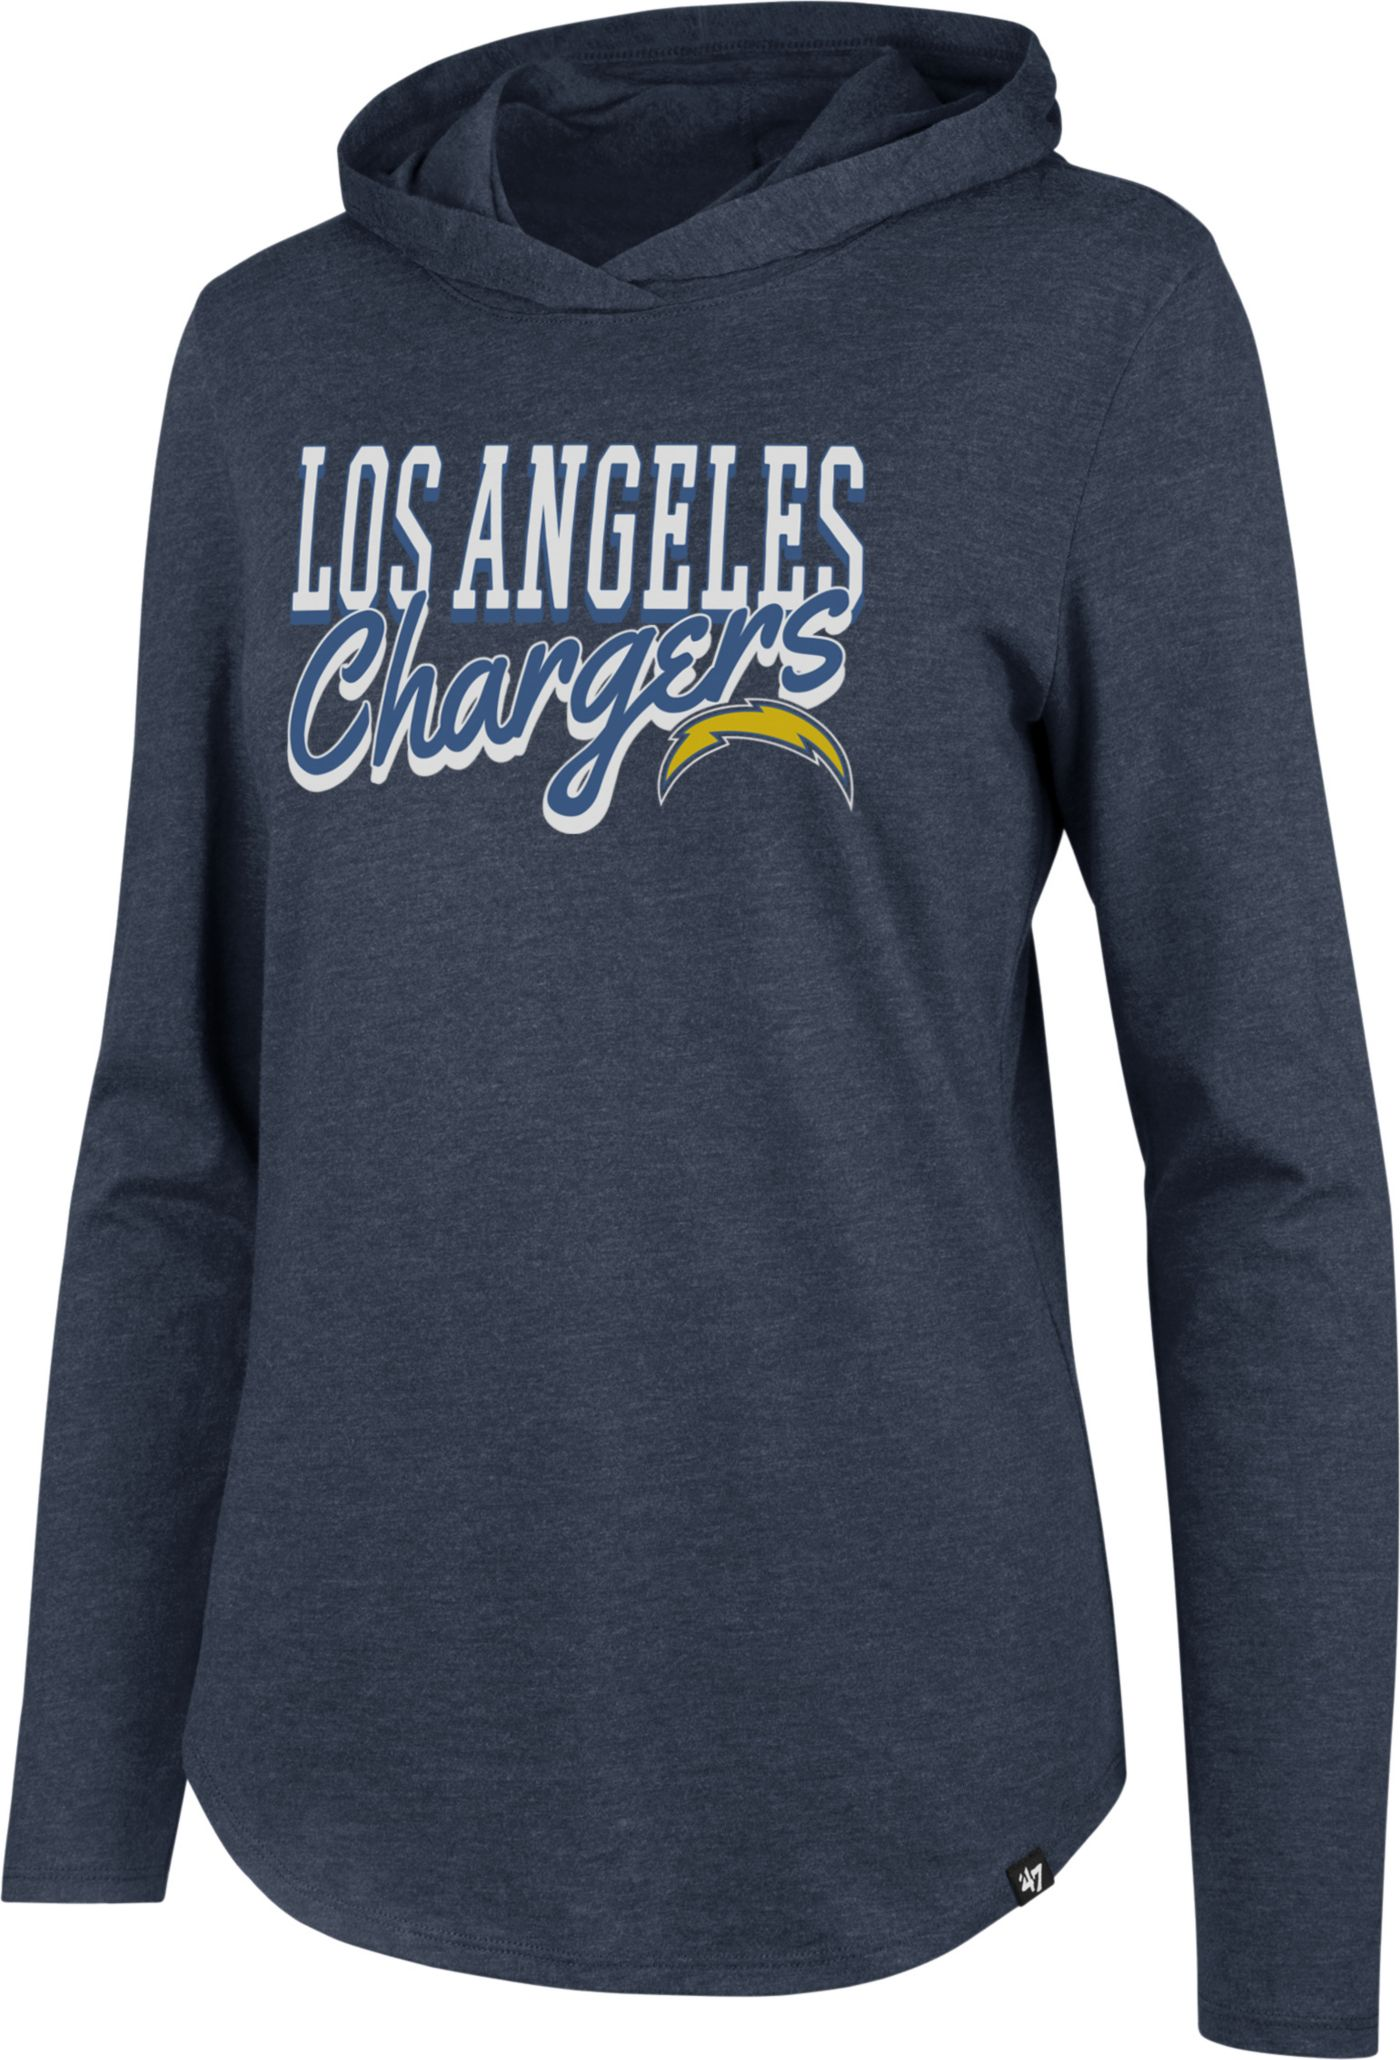 '47 Women's Los Angeles Chargers Club Navy Hooded Long Sleeve Shirt